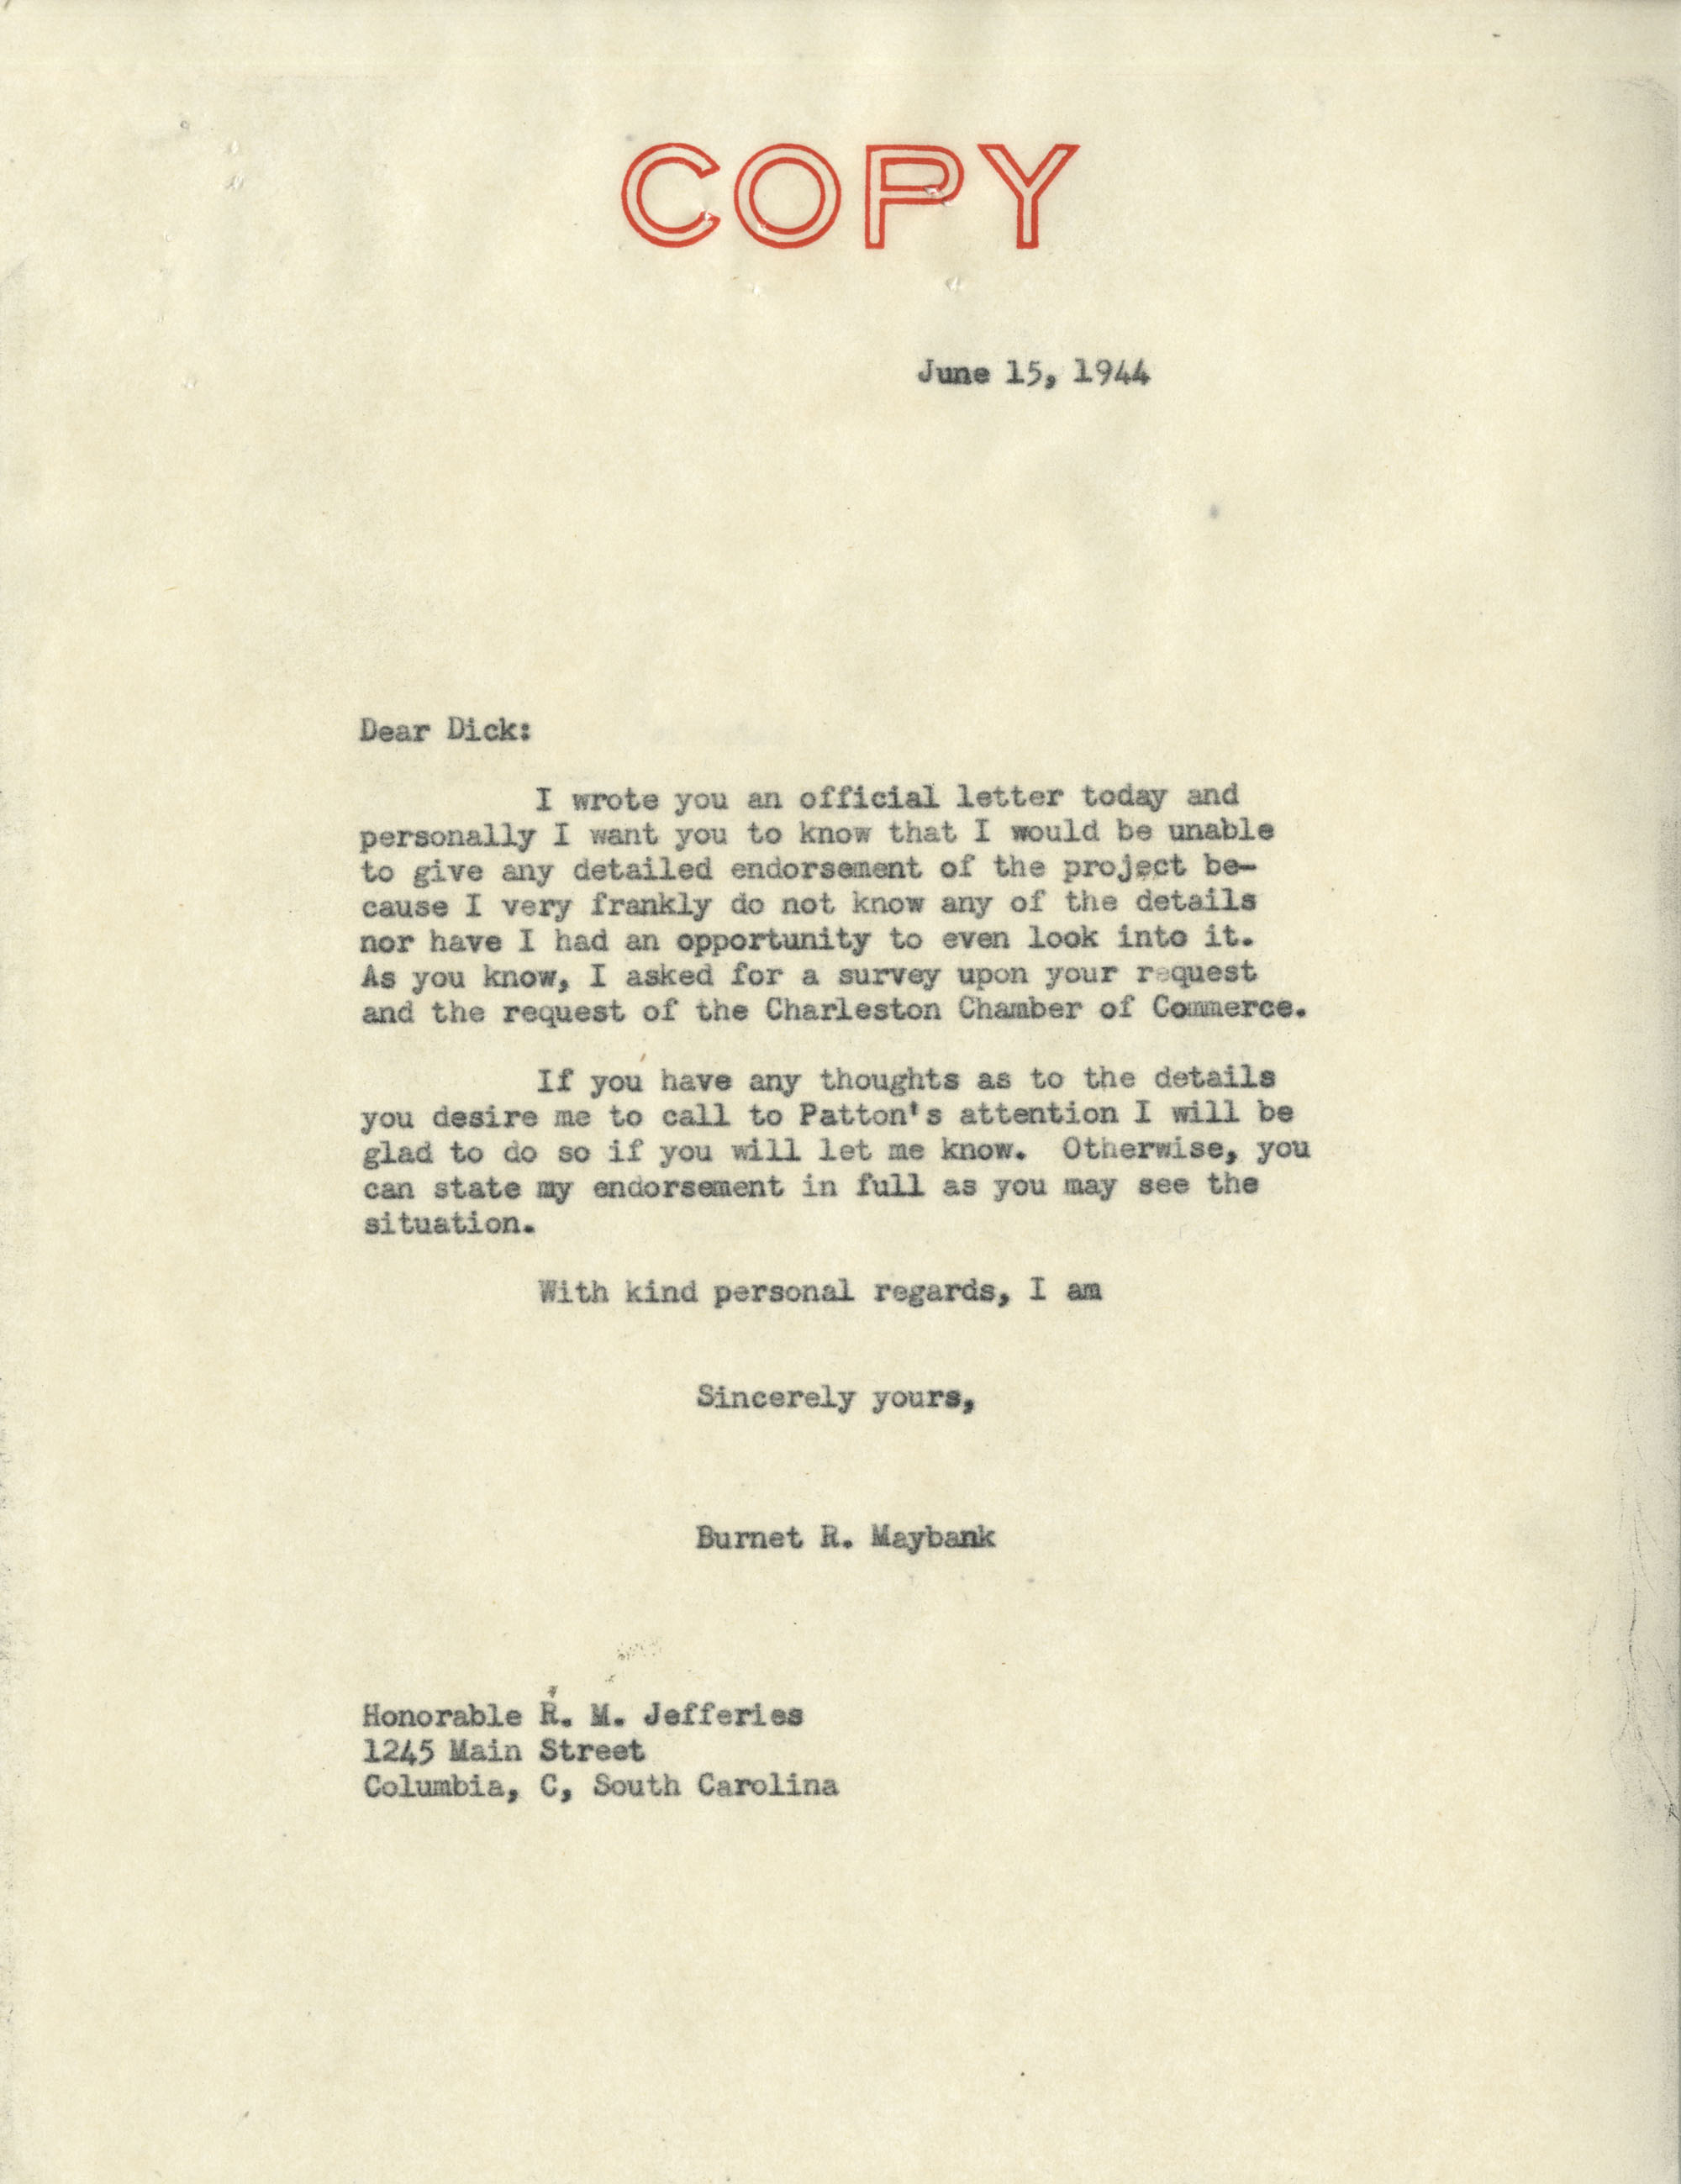 Santee-Cooper: Letter from Senator Burnet R. Maybank to Richard M. Jefferies (General Counsel of the South Carolina Public Service Authority), June 15, 1944